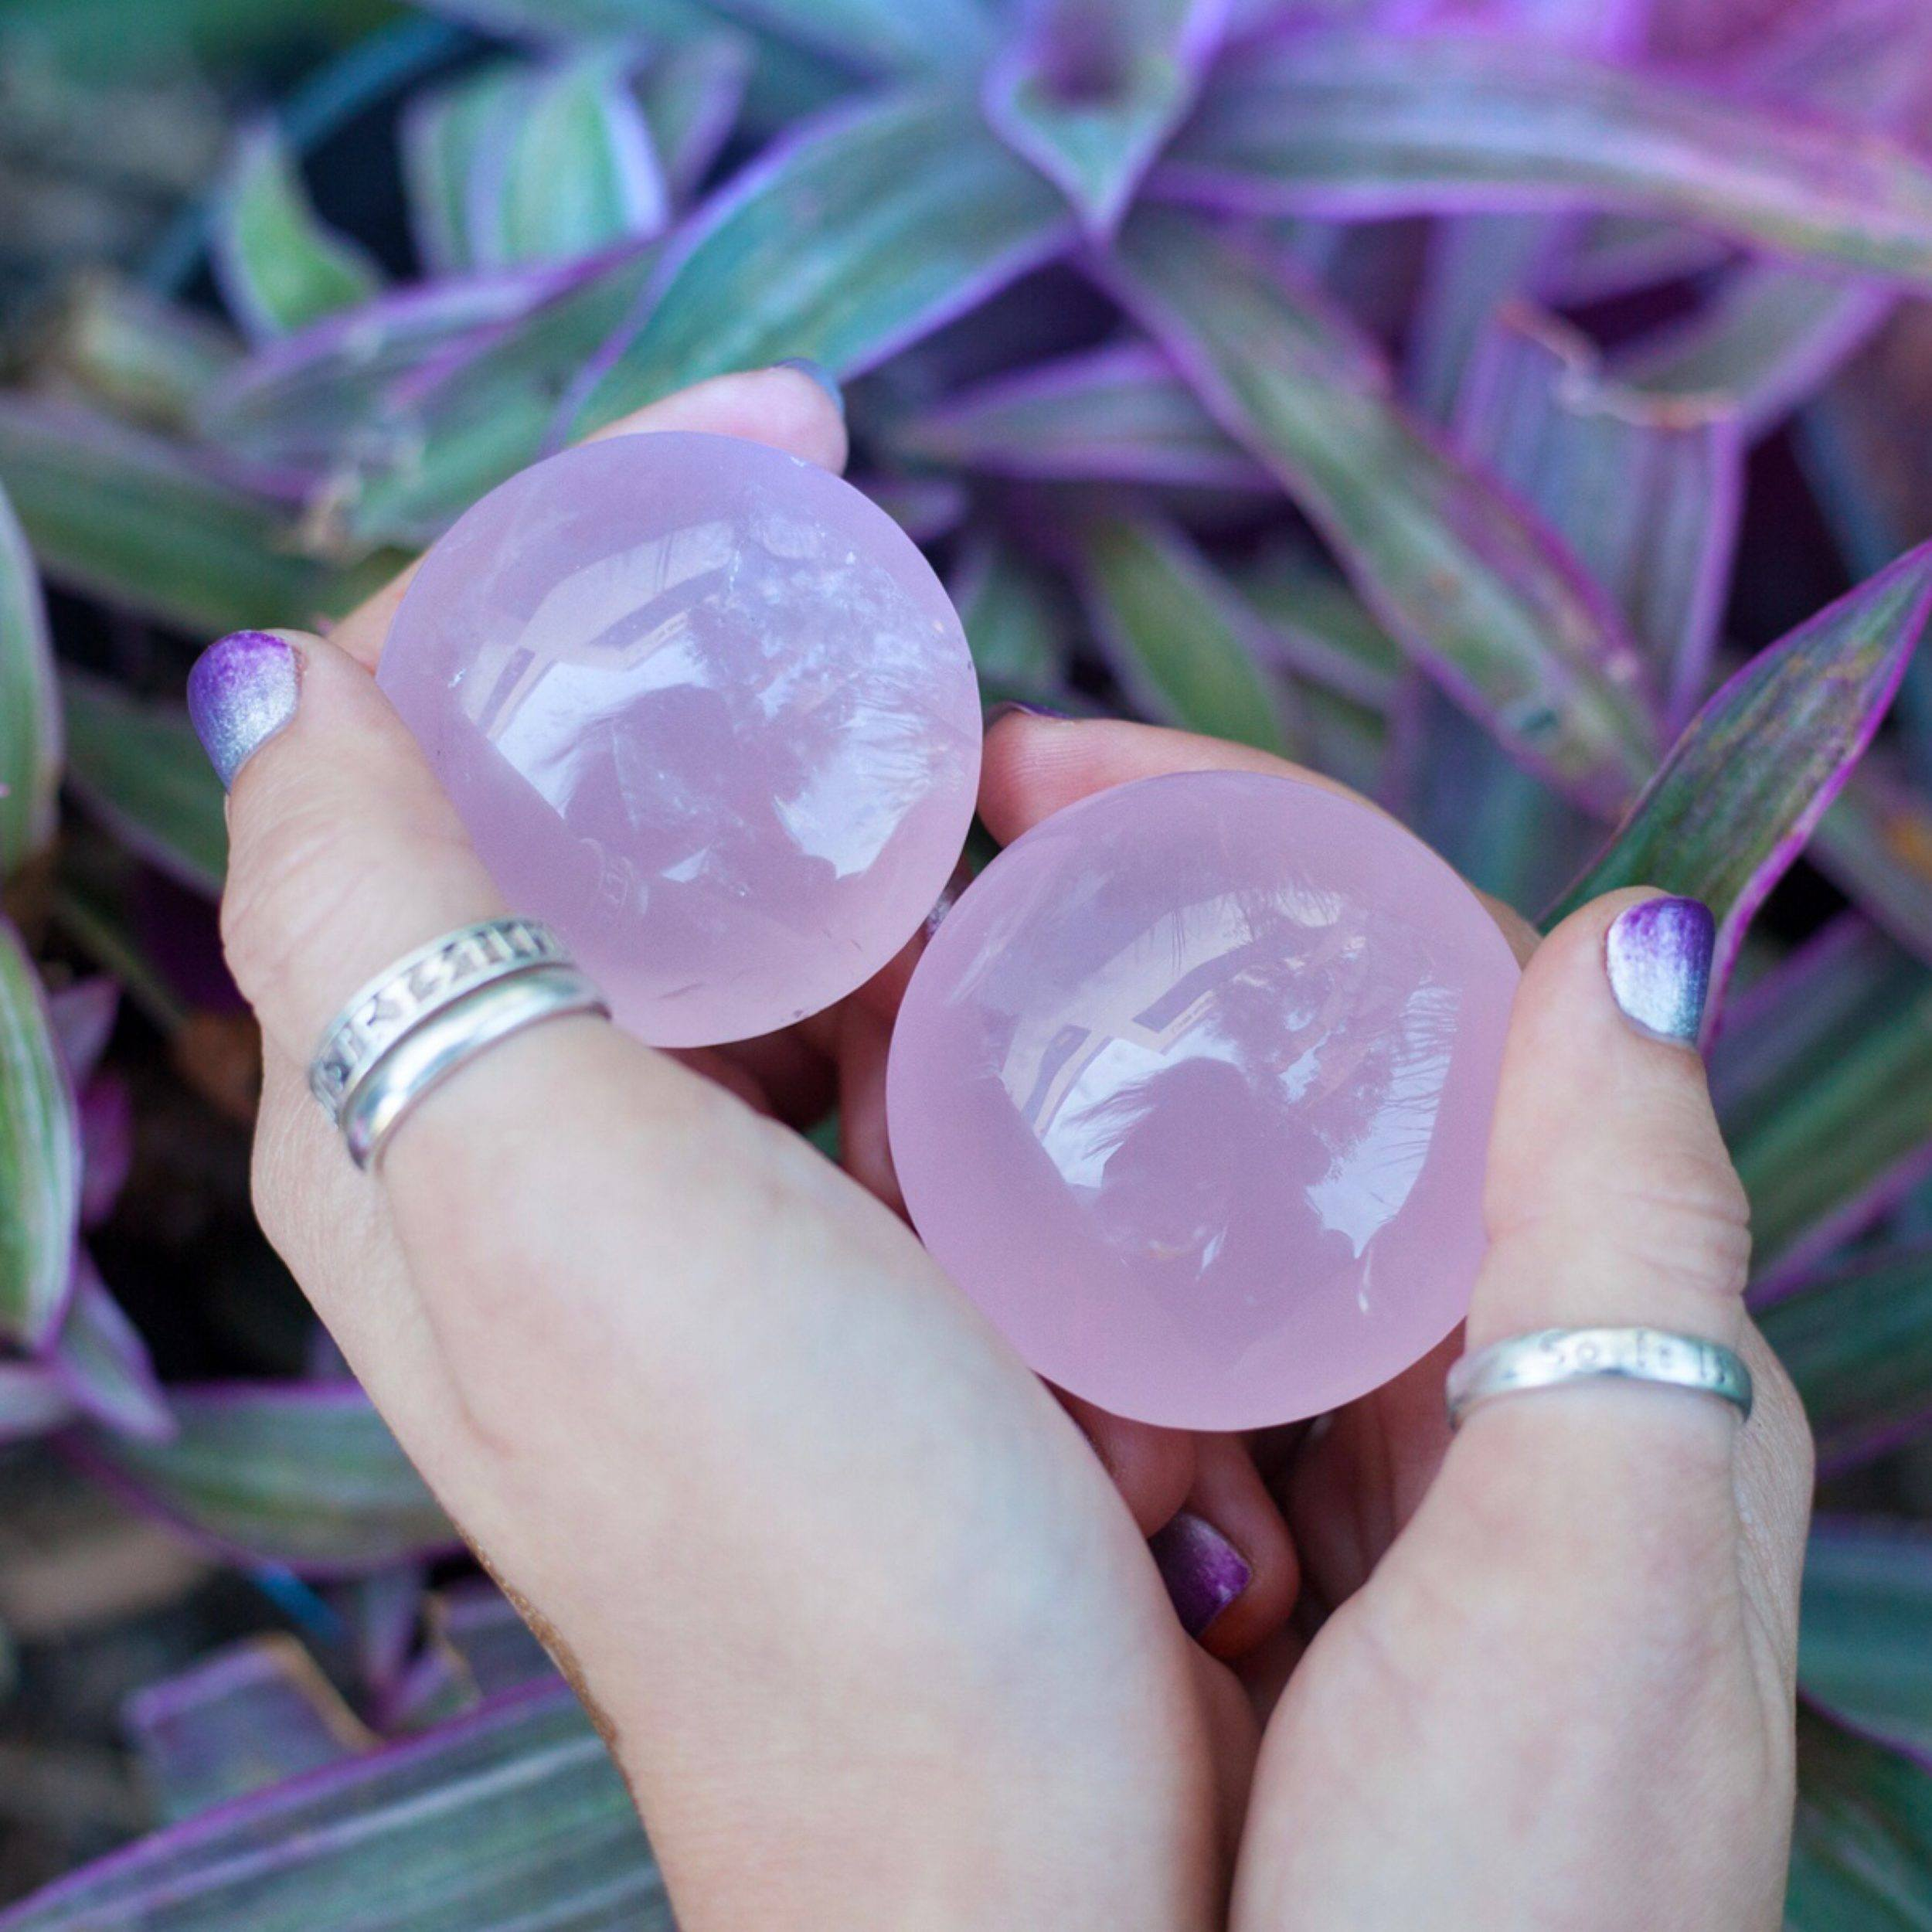 Invite Your Twin Flame Meditation Stones for soul connection